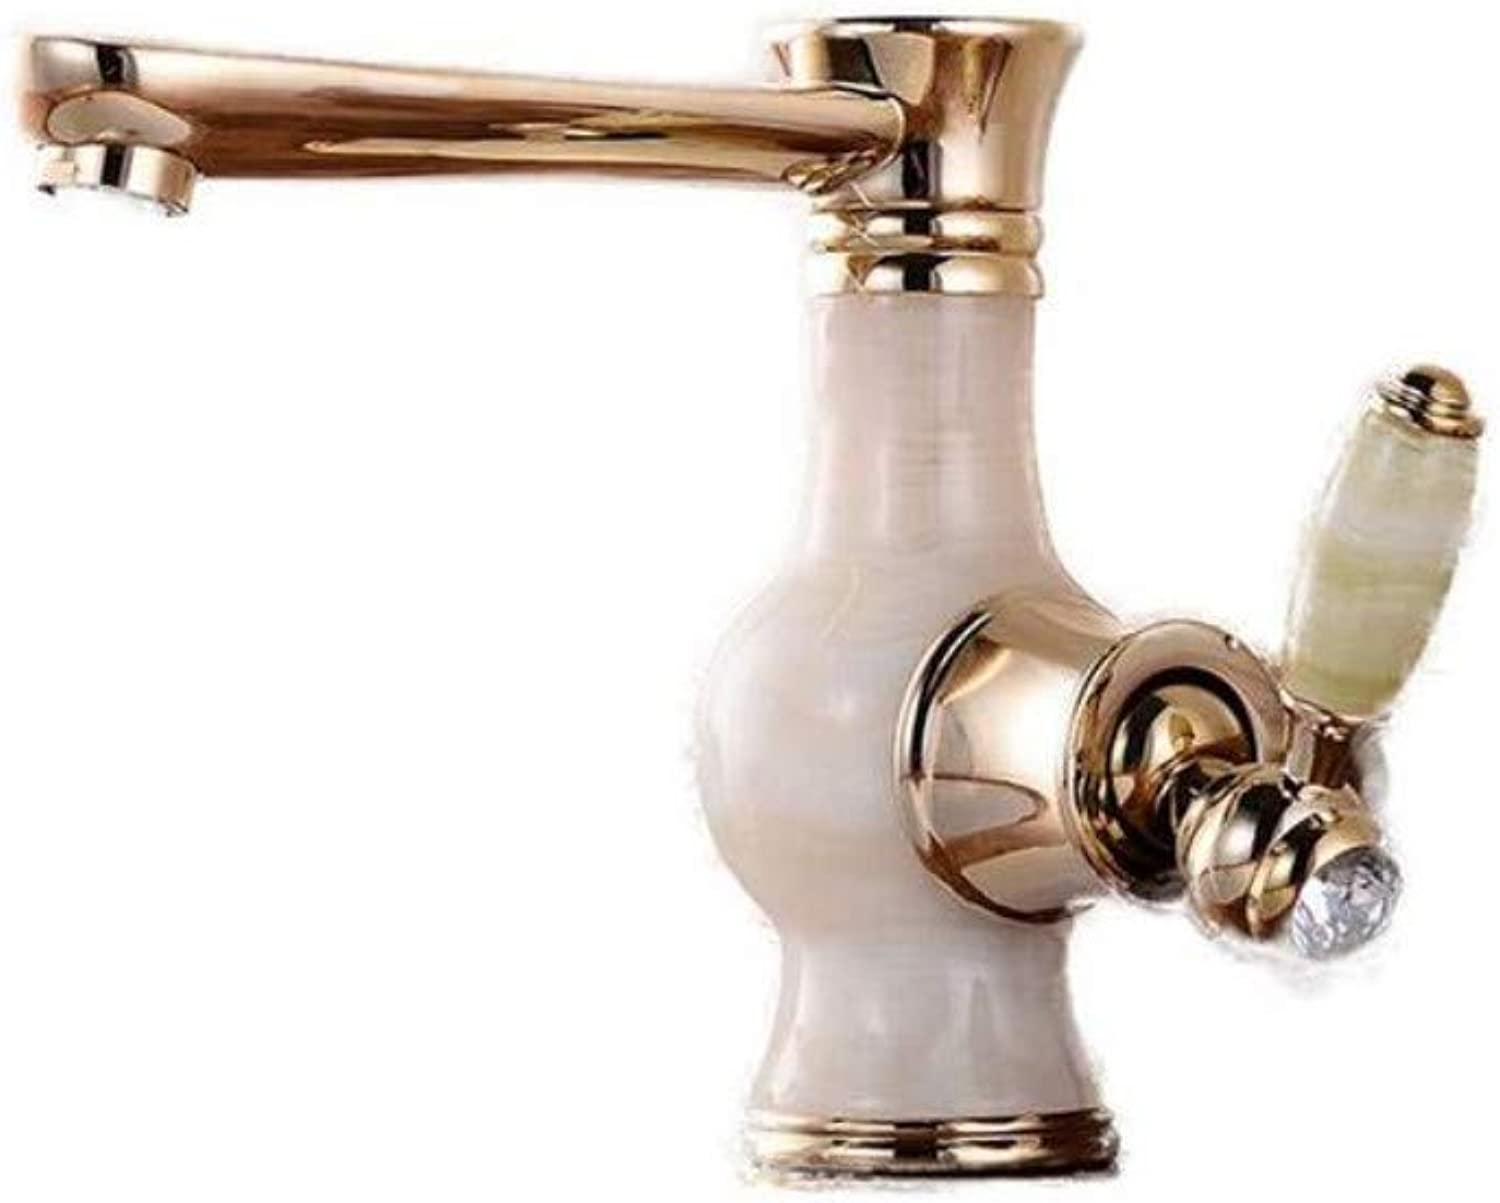 Modern Plated Kitchen Bathroom Faucet Basin Hot and Cold Faucet Wash Basin Retro redating Faucet Single Hole Faucet